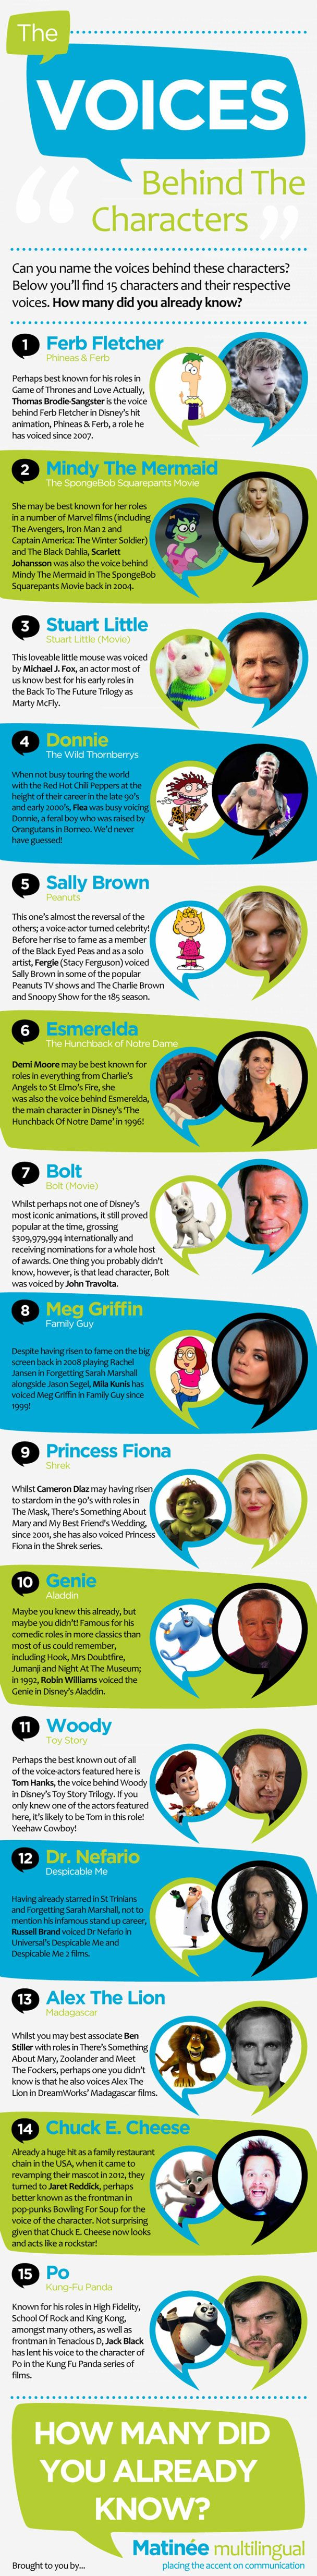 Voices Behind Popular Cartoon Characters [Infographic]